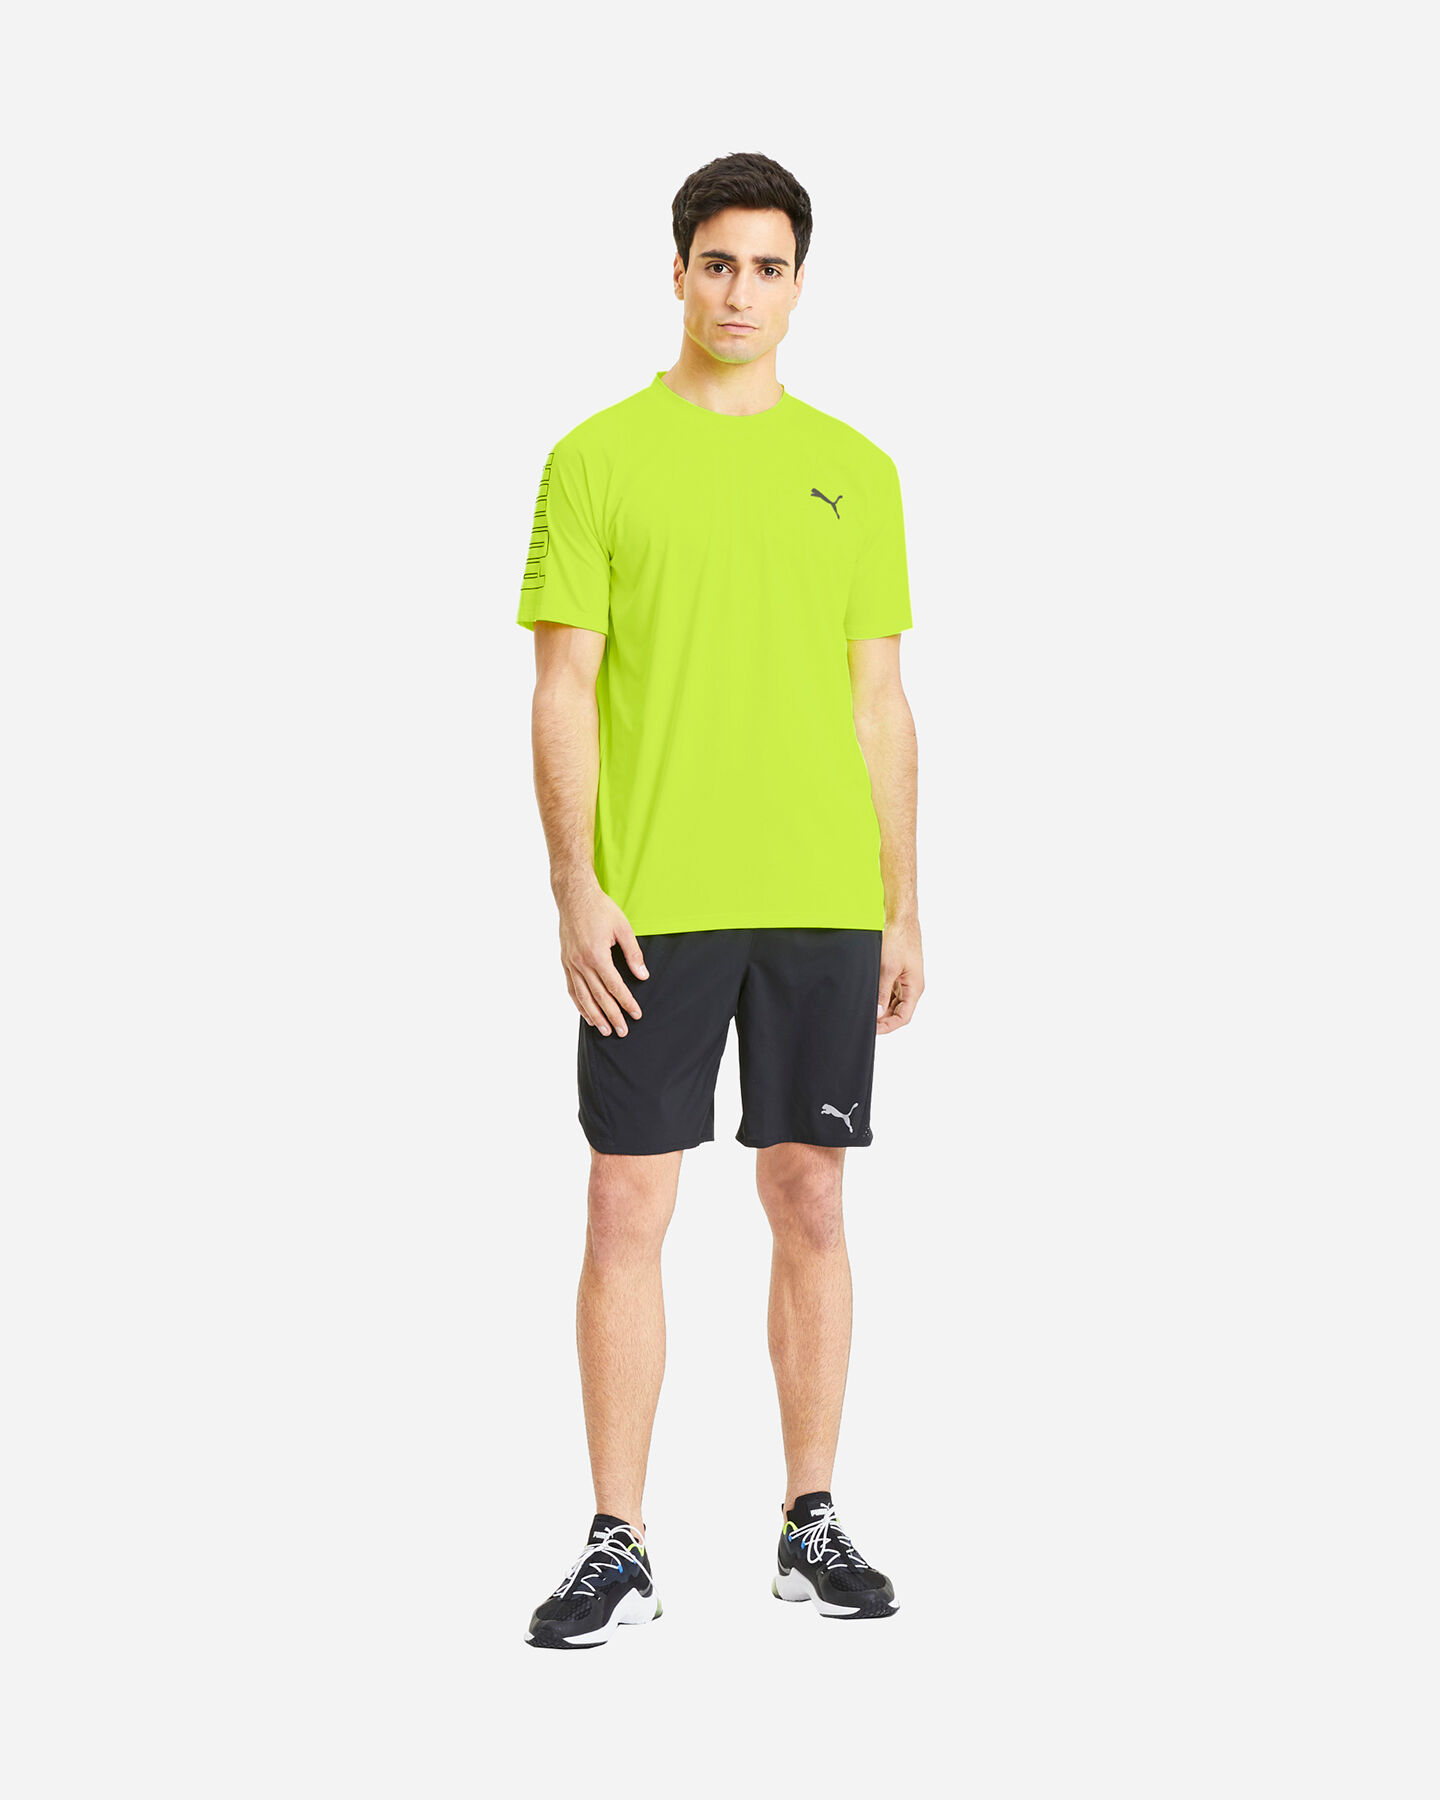 T-Shirt training PUMA LQCELL H POWER THERMO M S5172765 scatto 4